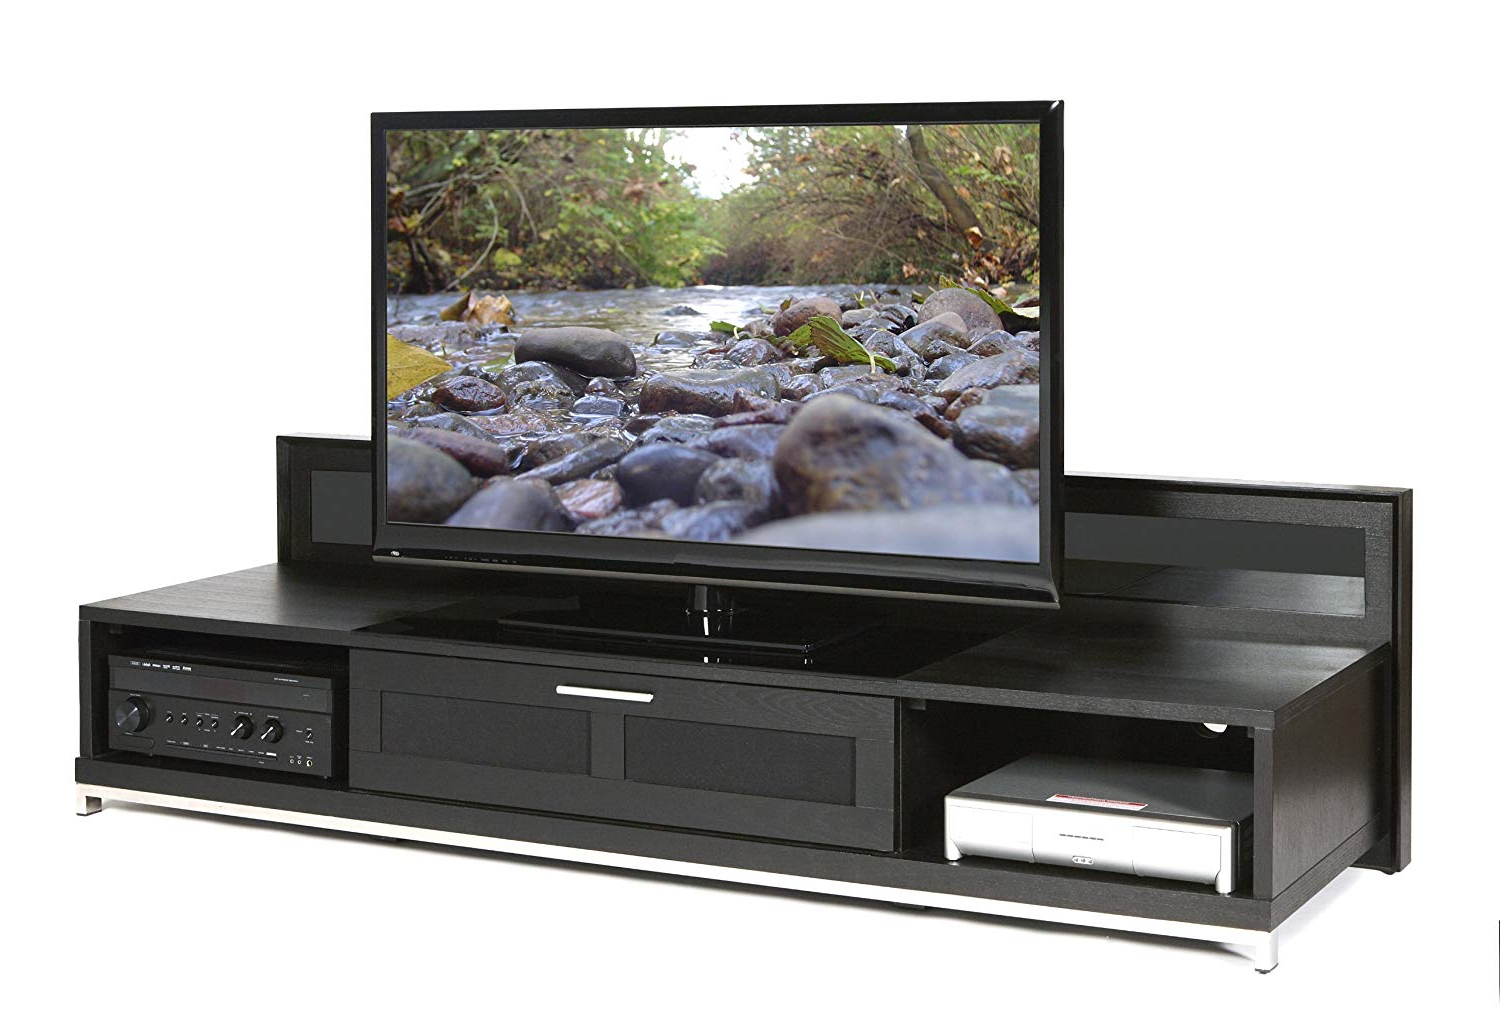 Newest Amazon: Plateau Valencia 79 B Wood Tv Stand, 79 Inch, Black Oak For Valencia 70 Inch Tv Stands (Gallery 6 of 20)